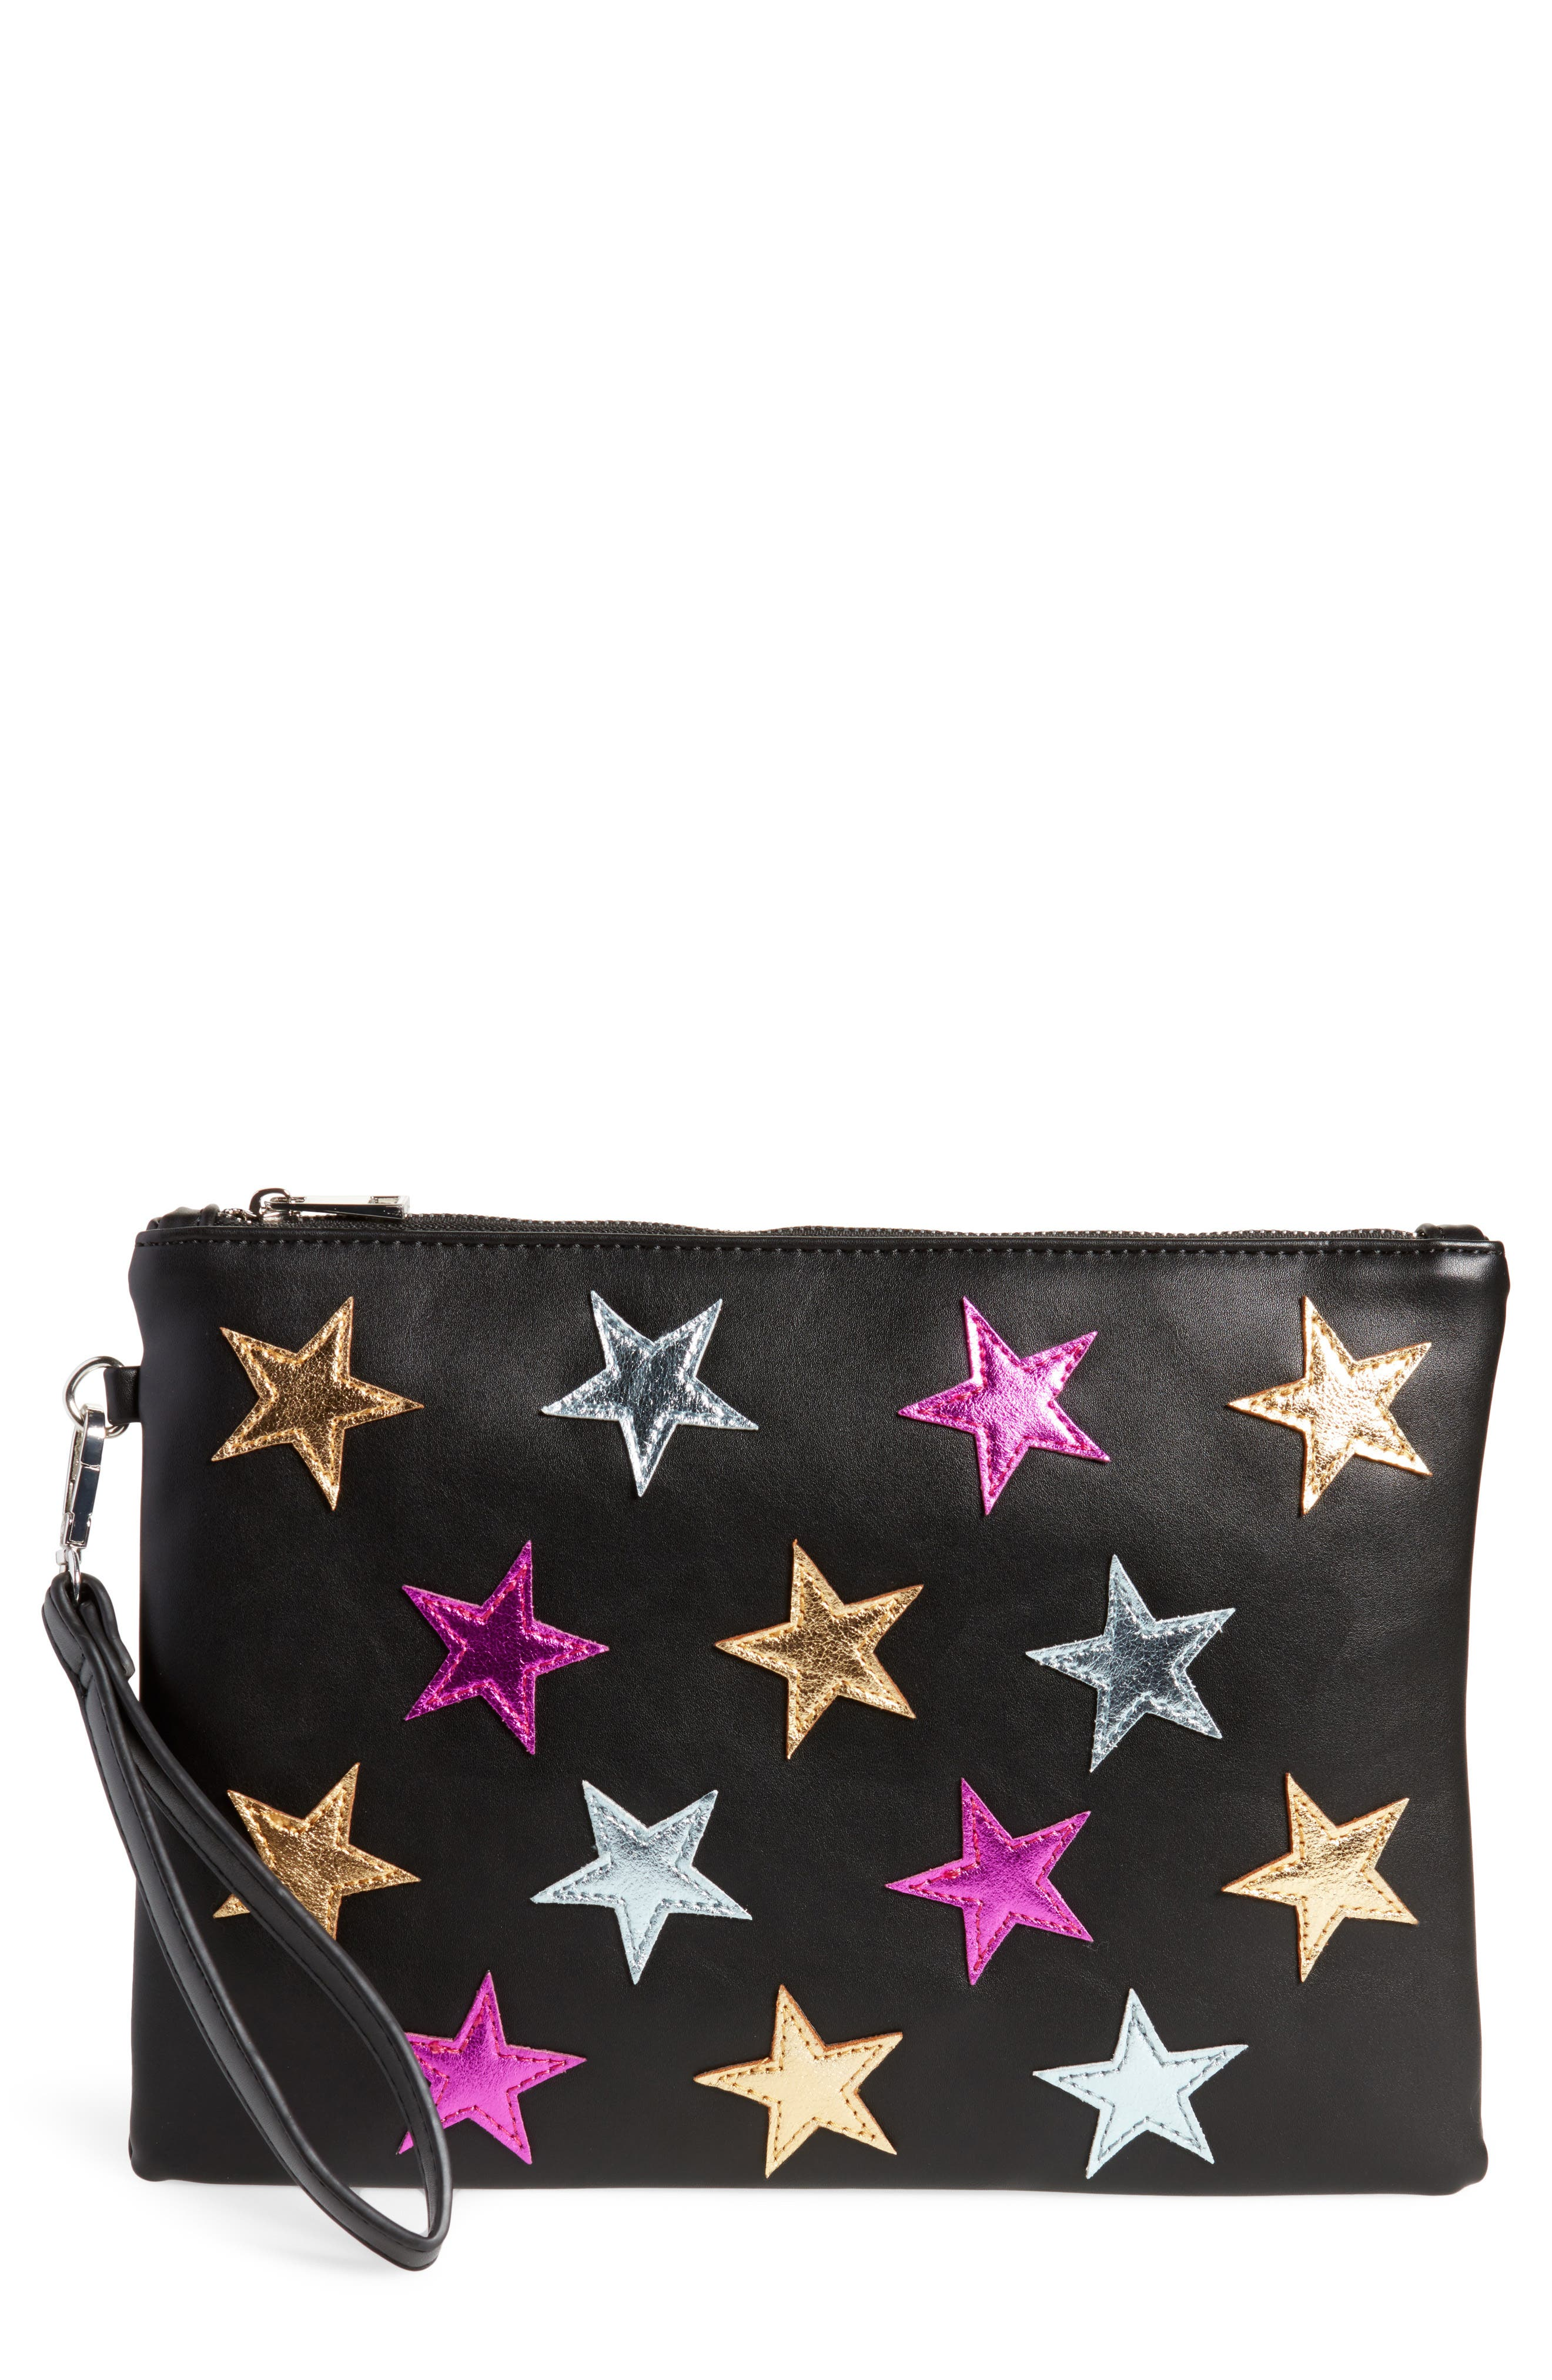 Main Image - Street Level Star Clutch